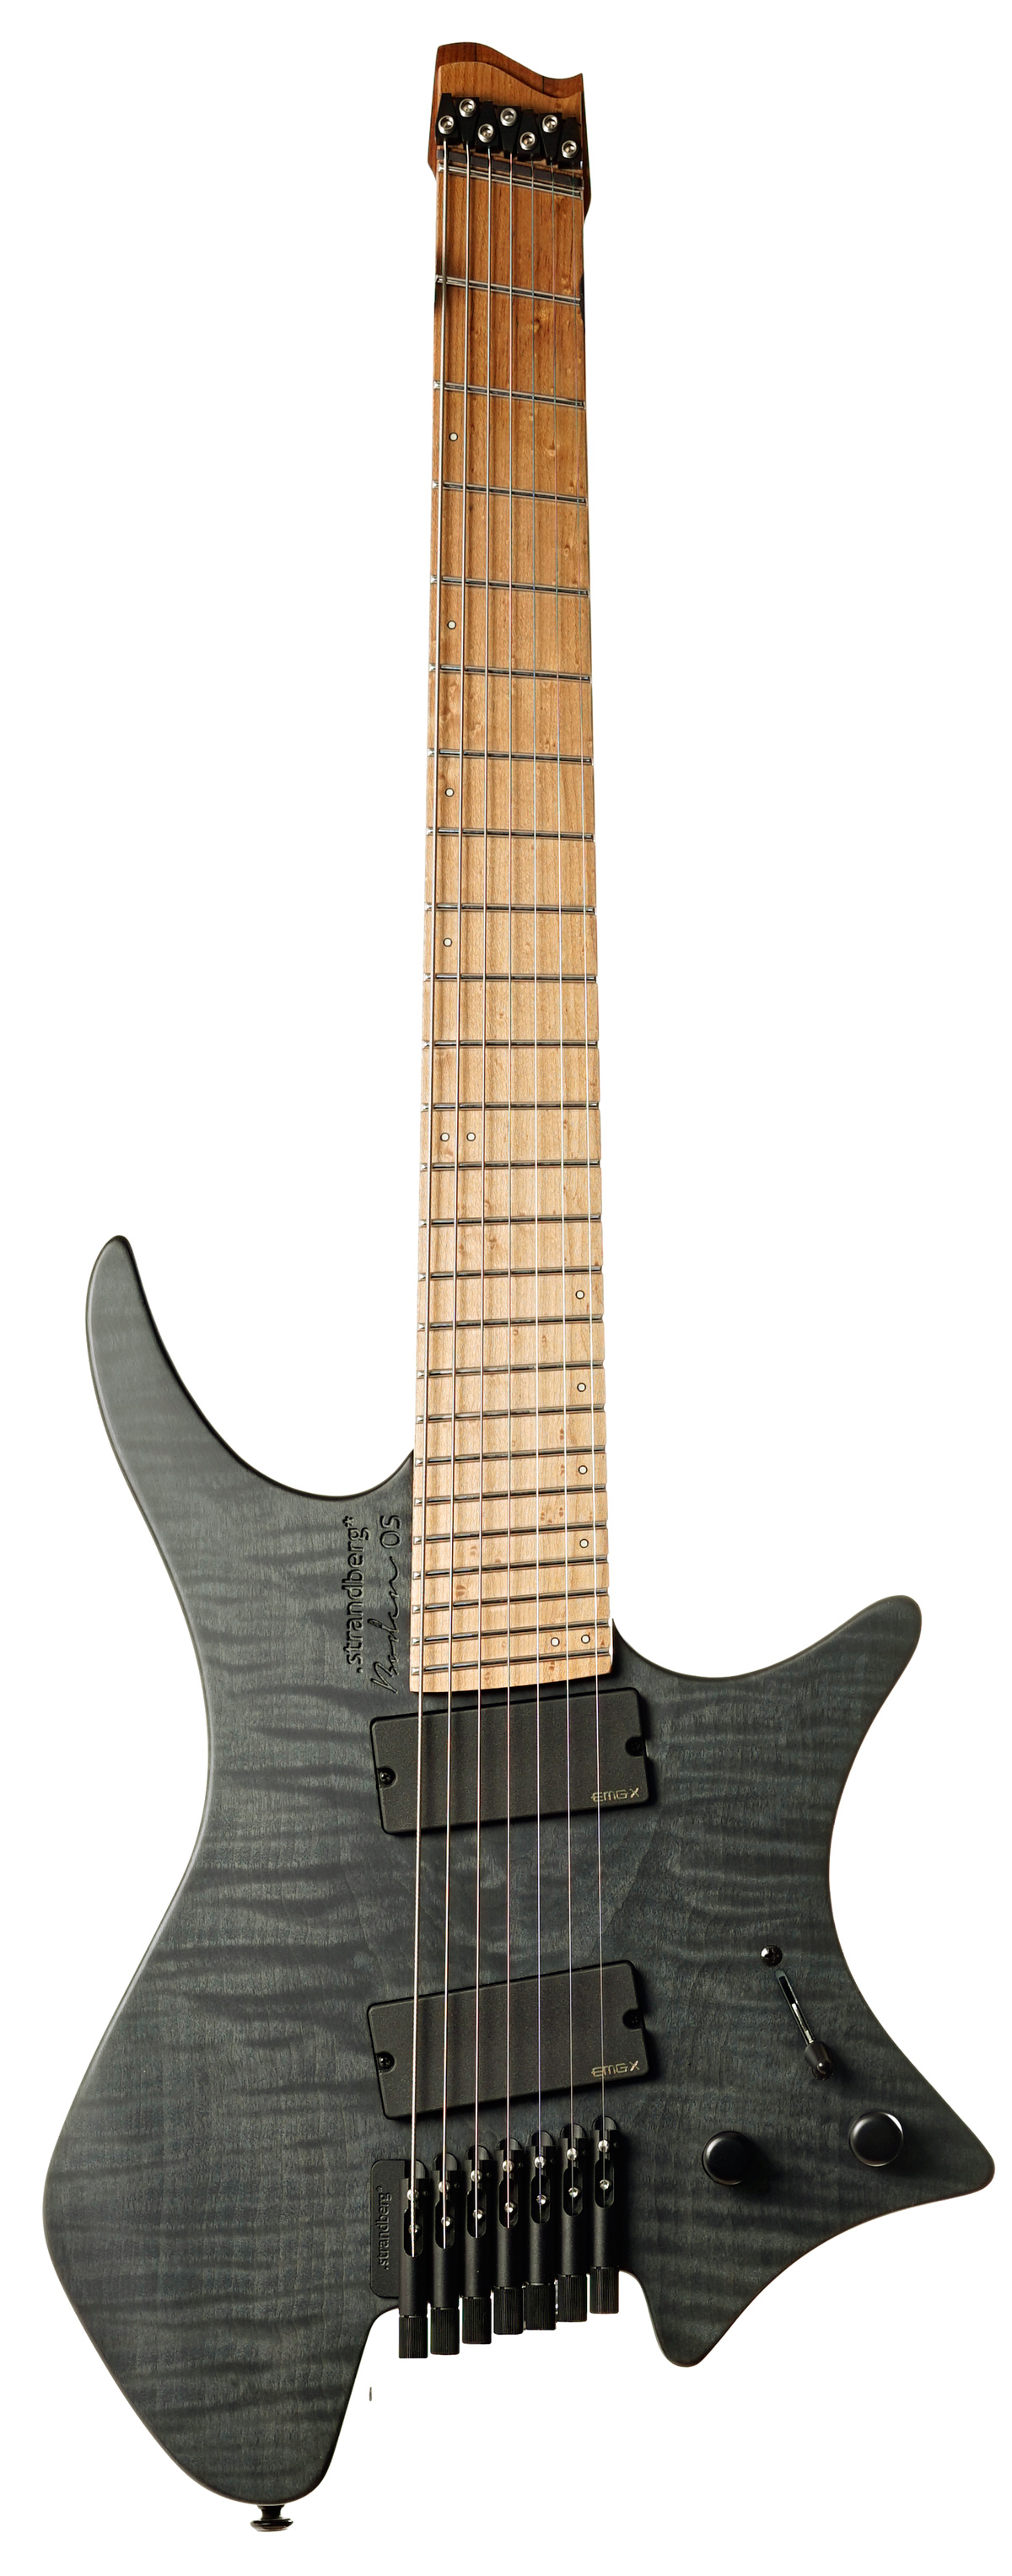 Strandberg boden os 7 special edition black maple for Strandberg boden 7